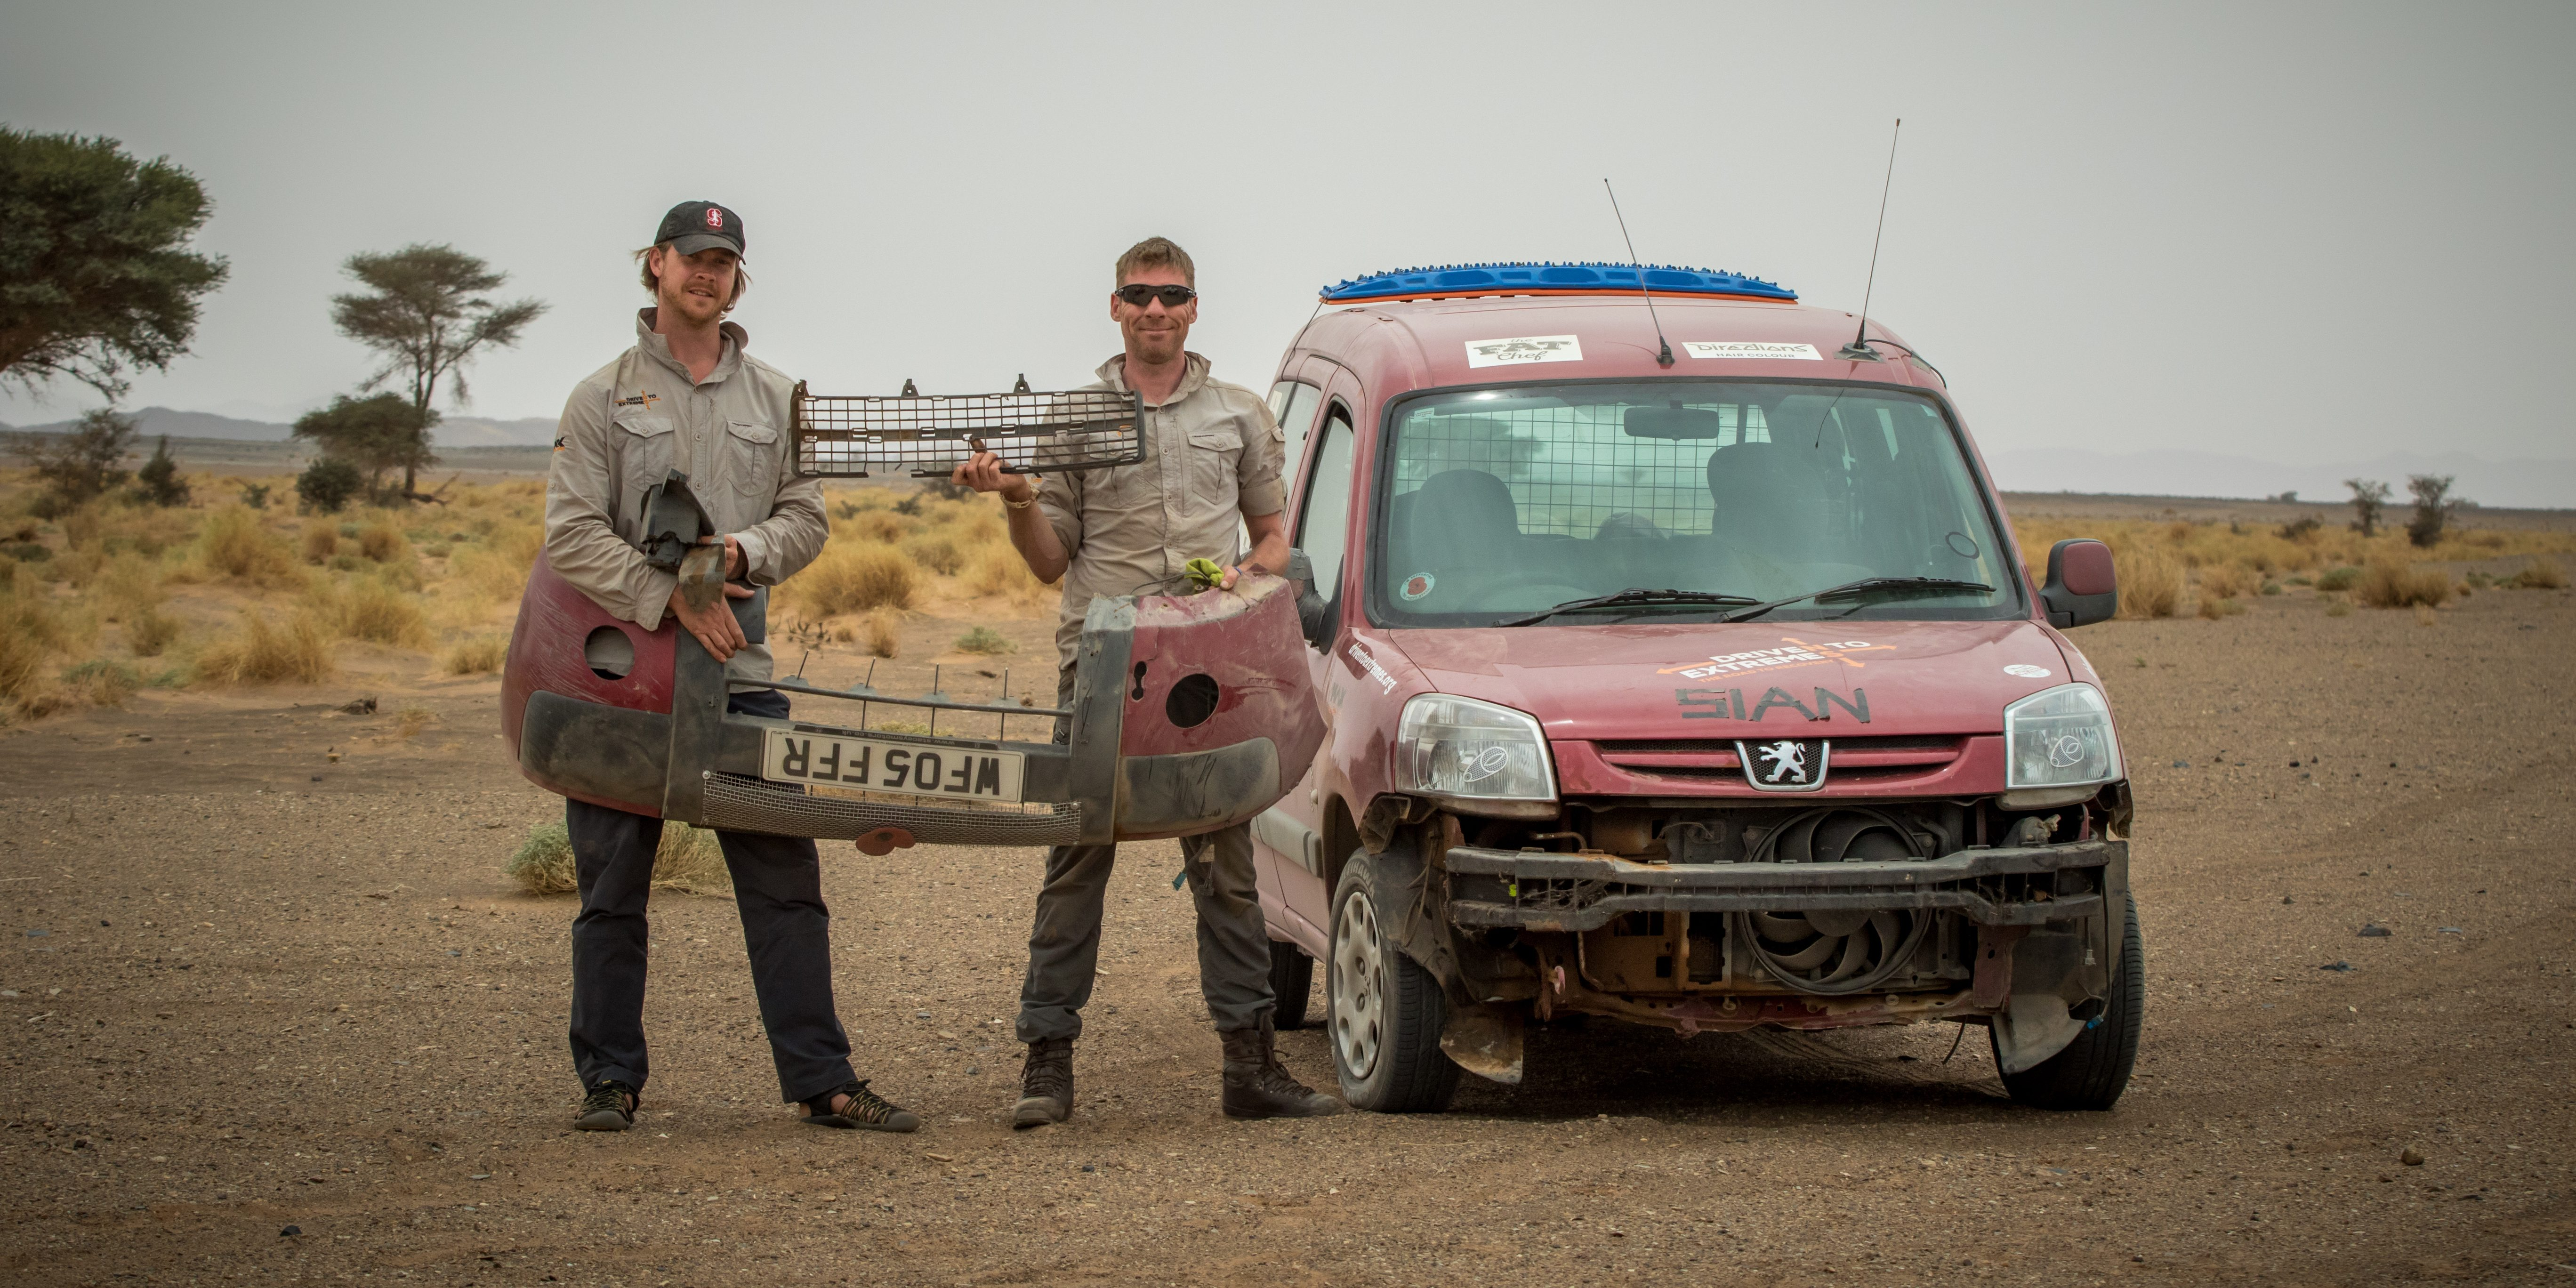 http://www.driventoextremes.org/wp-content/uploads/2018/12/IMG_9028-e1608037462350.jpg